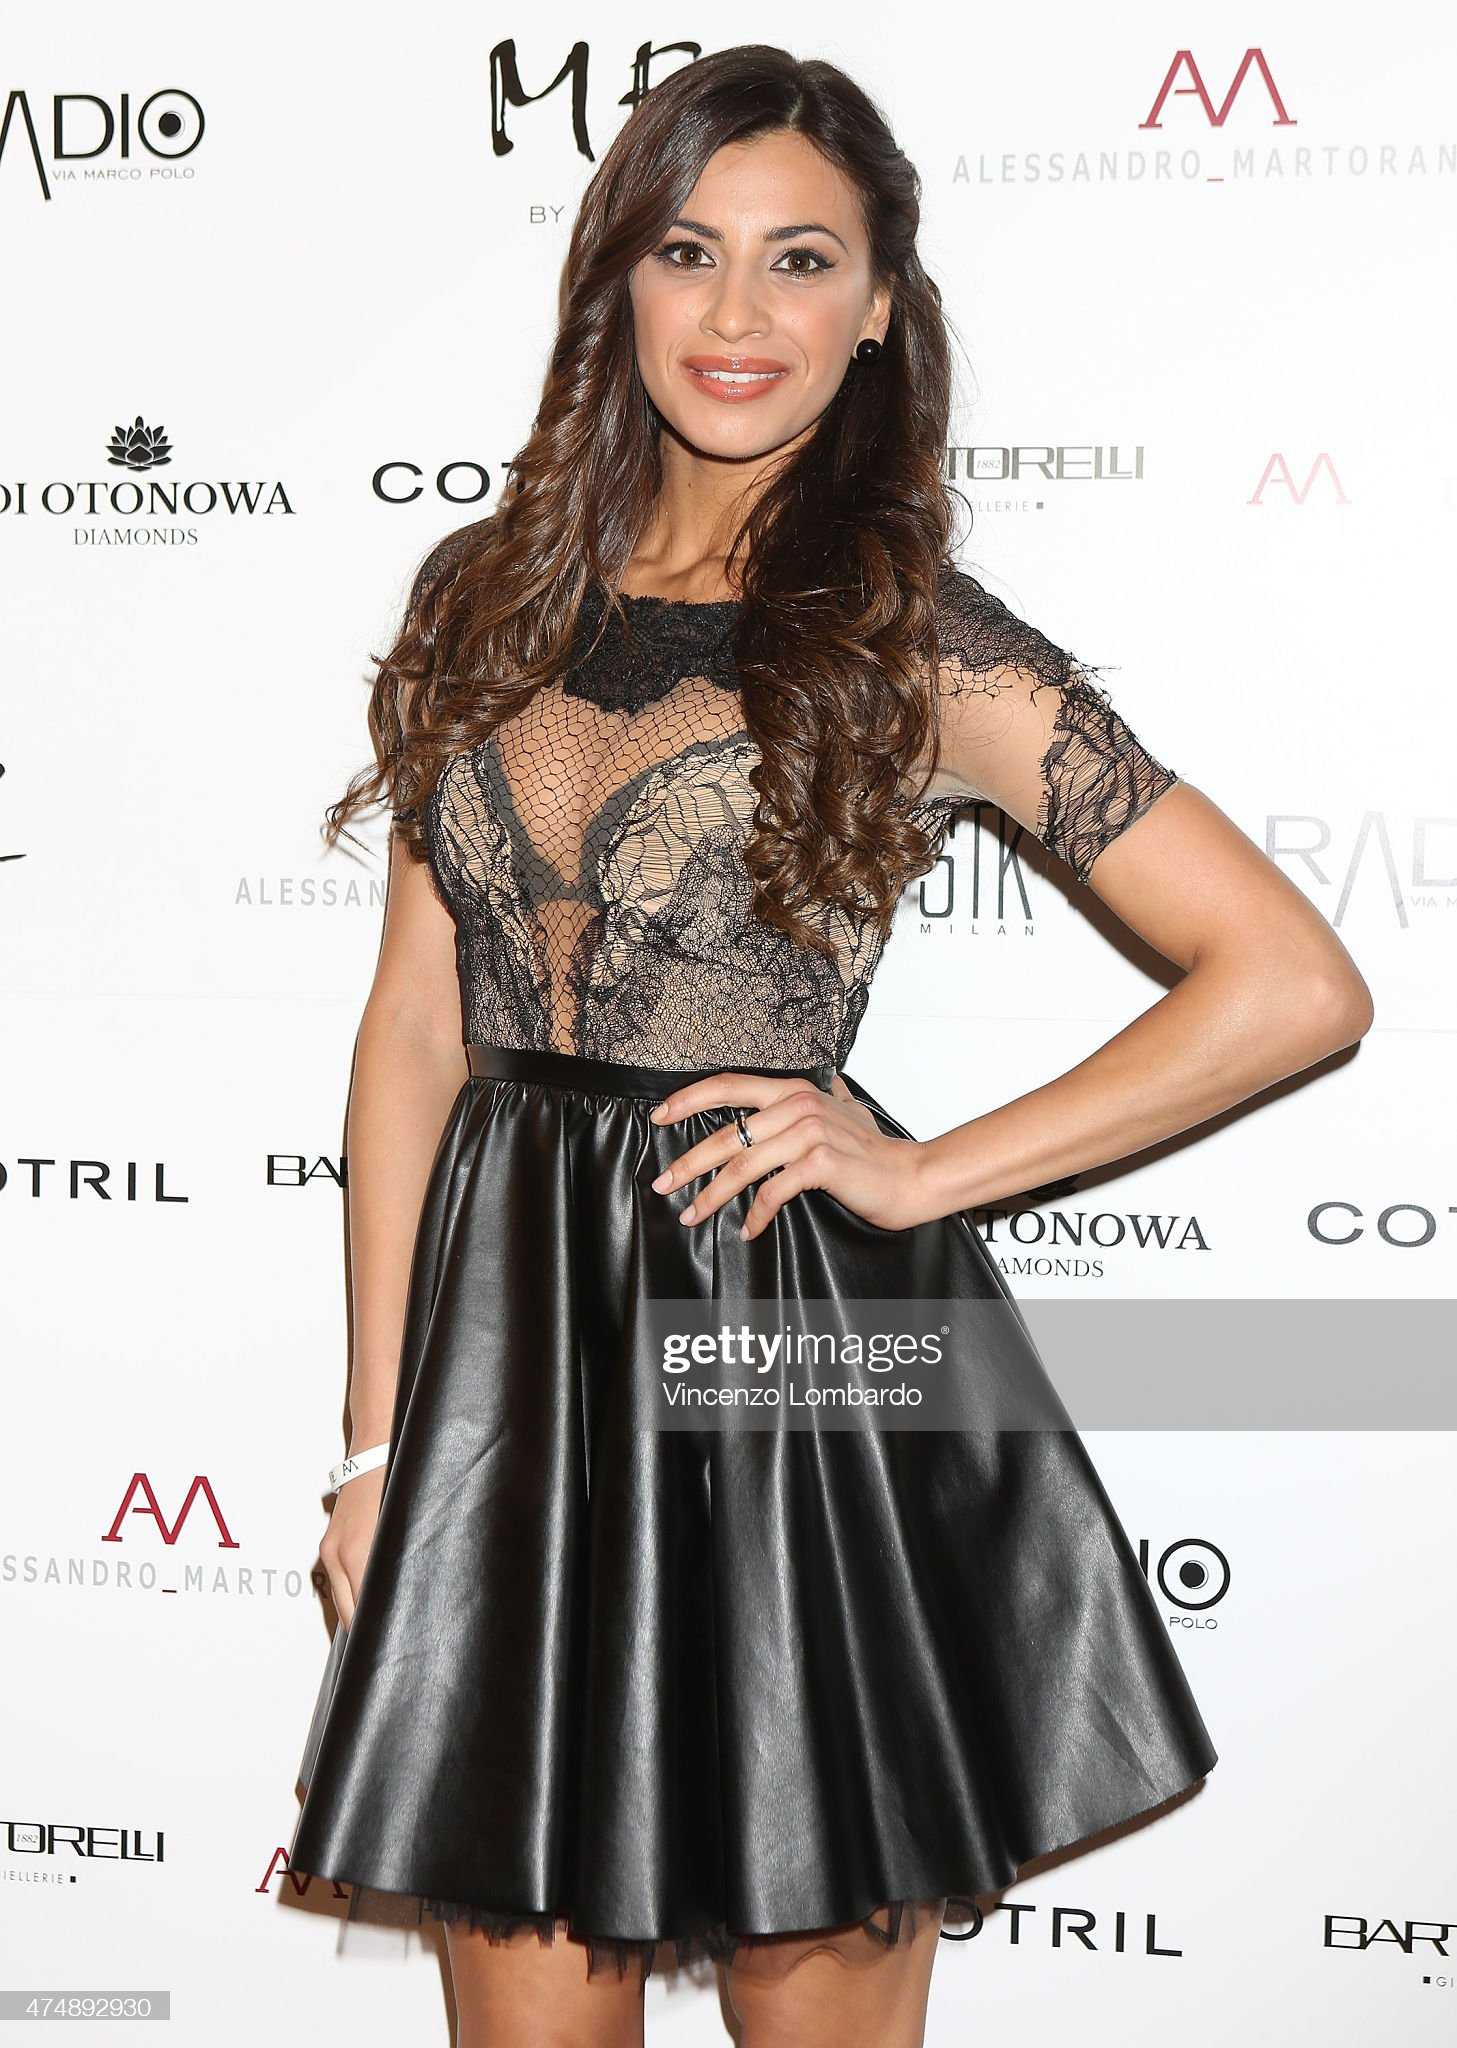 ¿Cuánto mide Romina Pierdomenico? - Real height Romina-pierdomenico-attends-the-suit-tie-cocktail-dinner-party-on-may-picture-id474892930?s=2048x2048